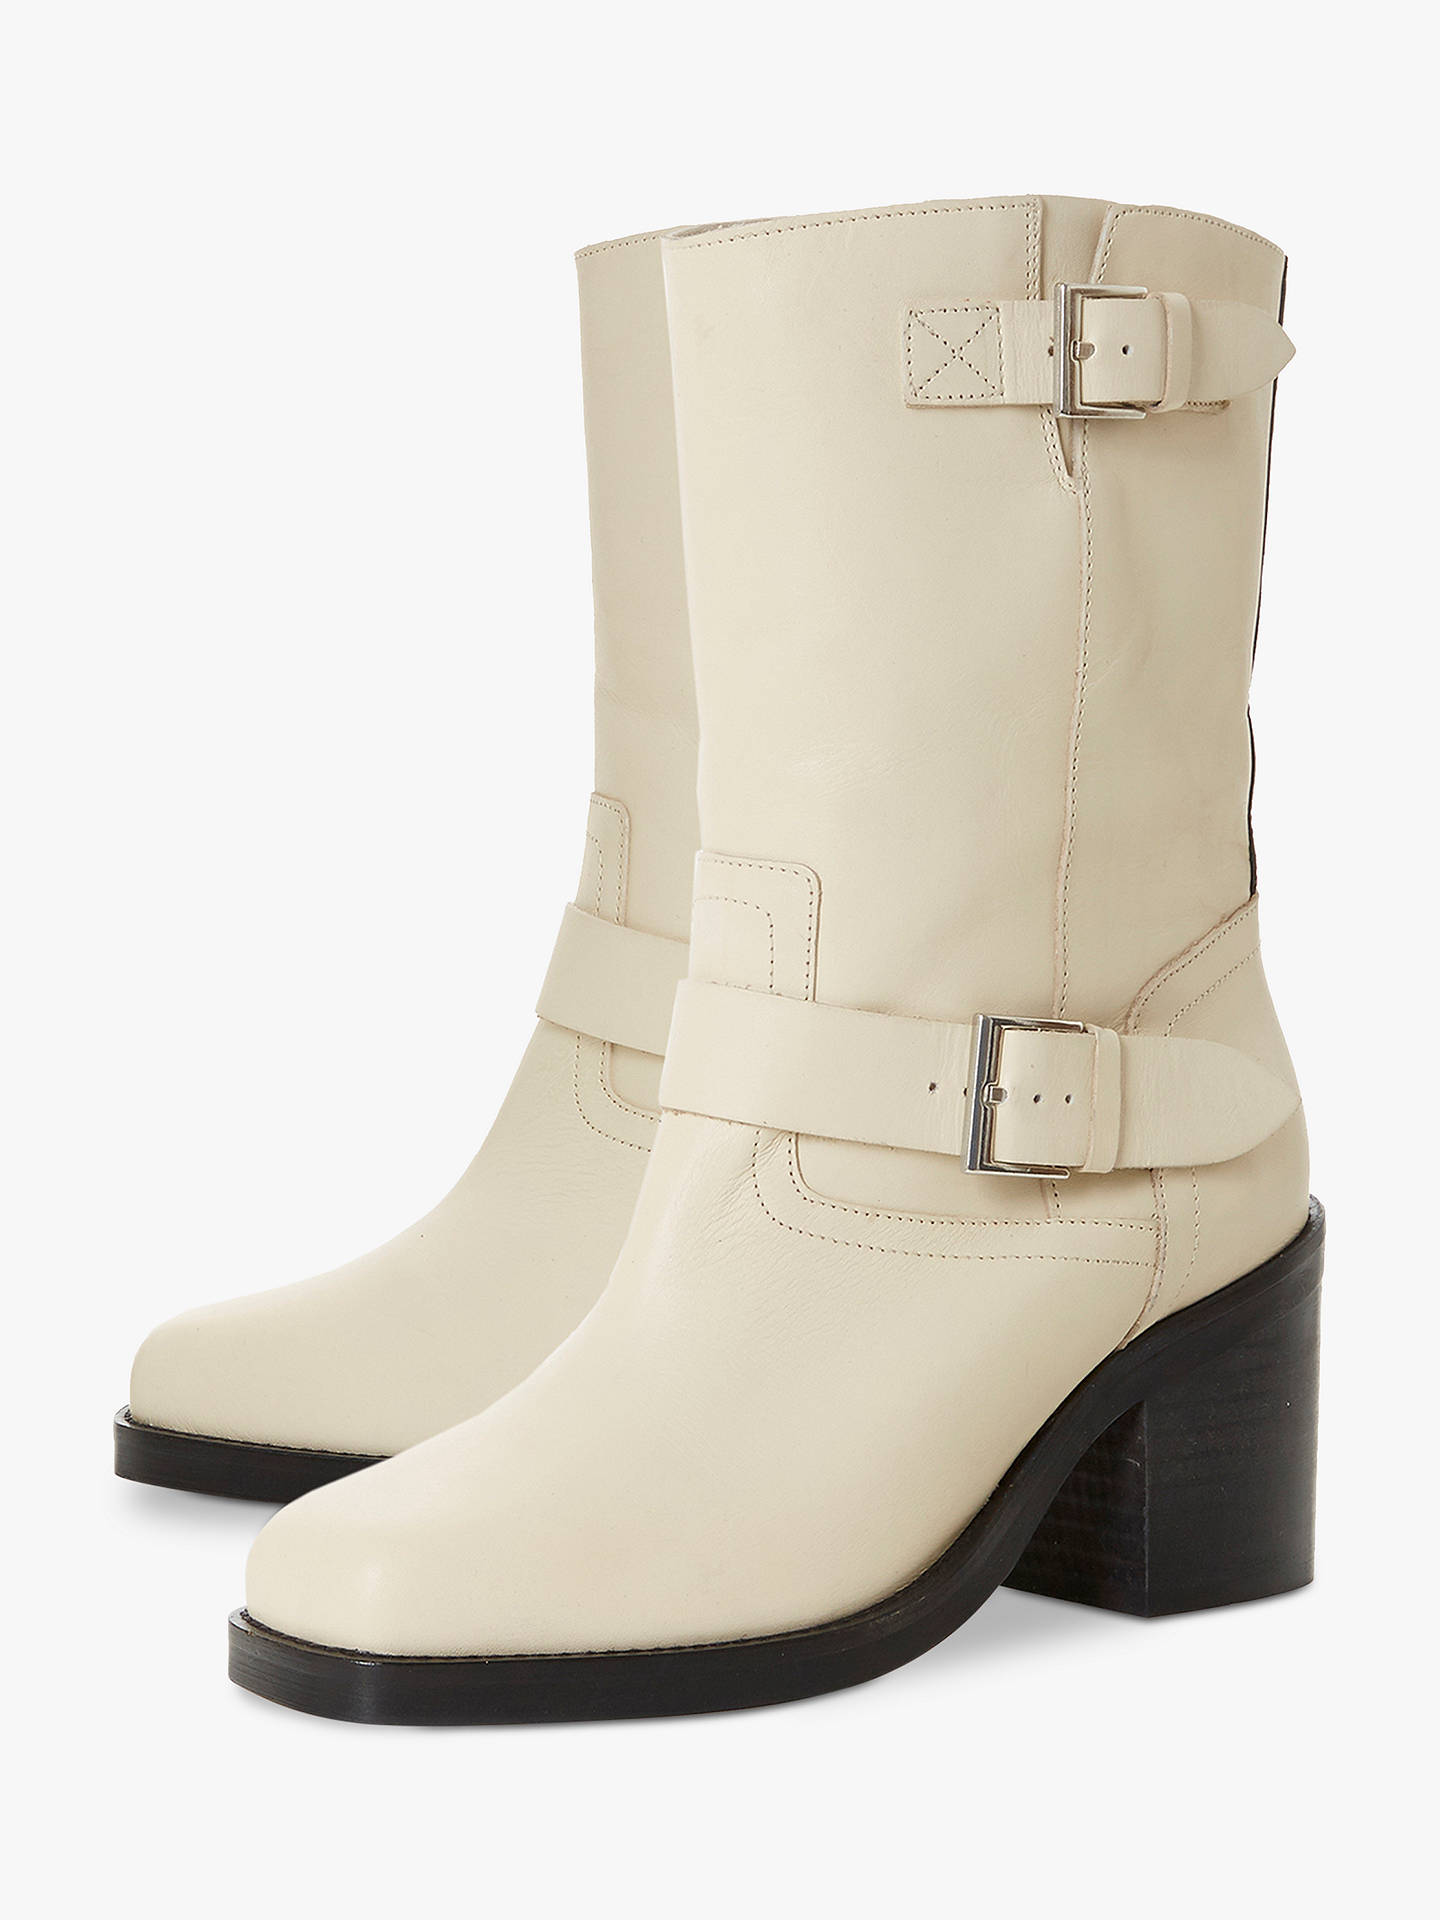 BuyDune Romeo Double Buckle Calf Boots, Cream Leather, 3 Online at johnlewis.com